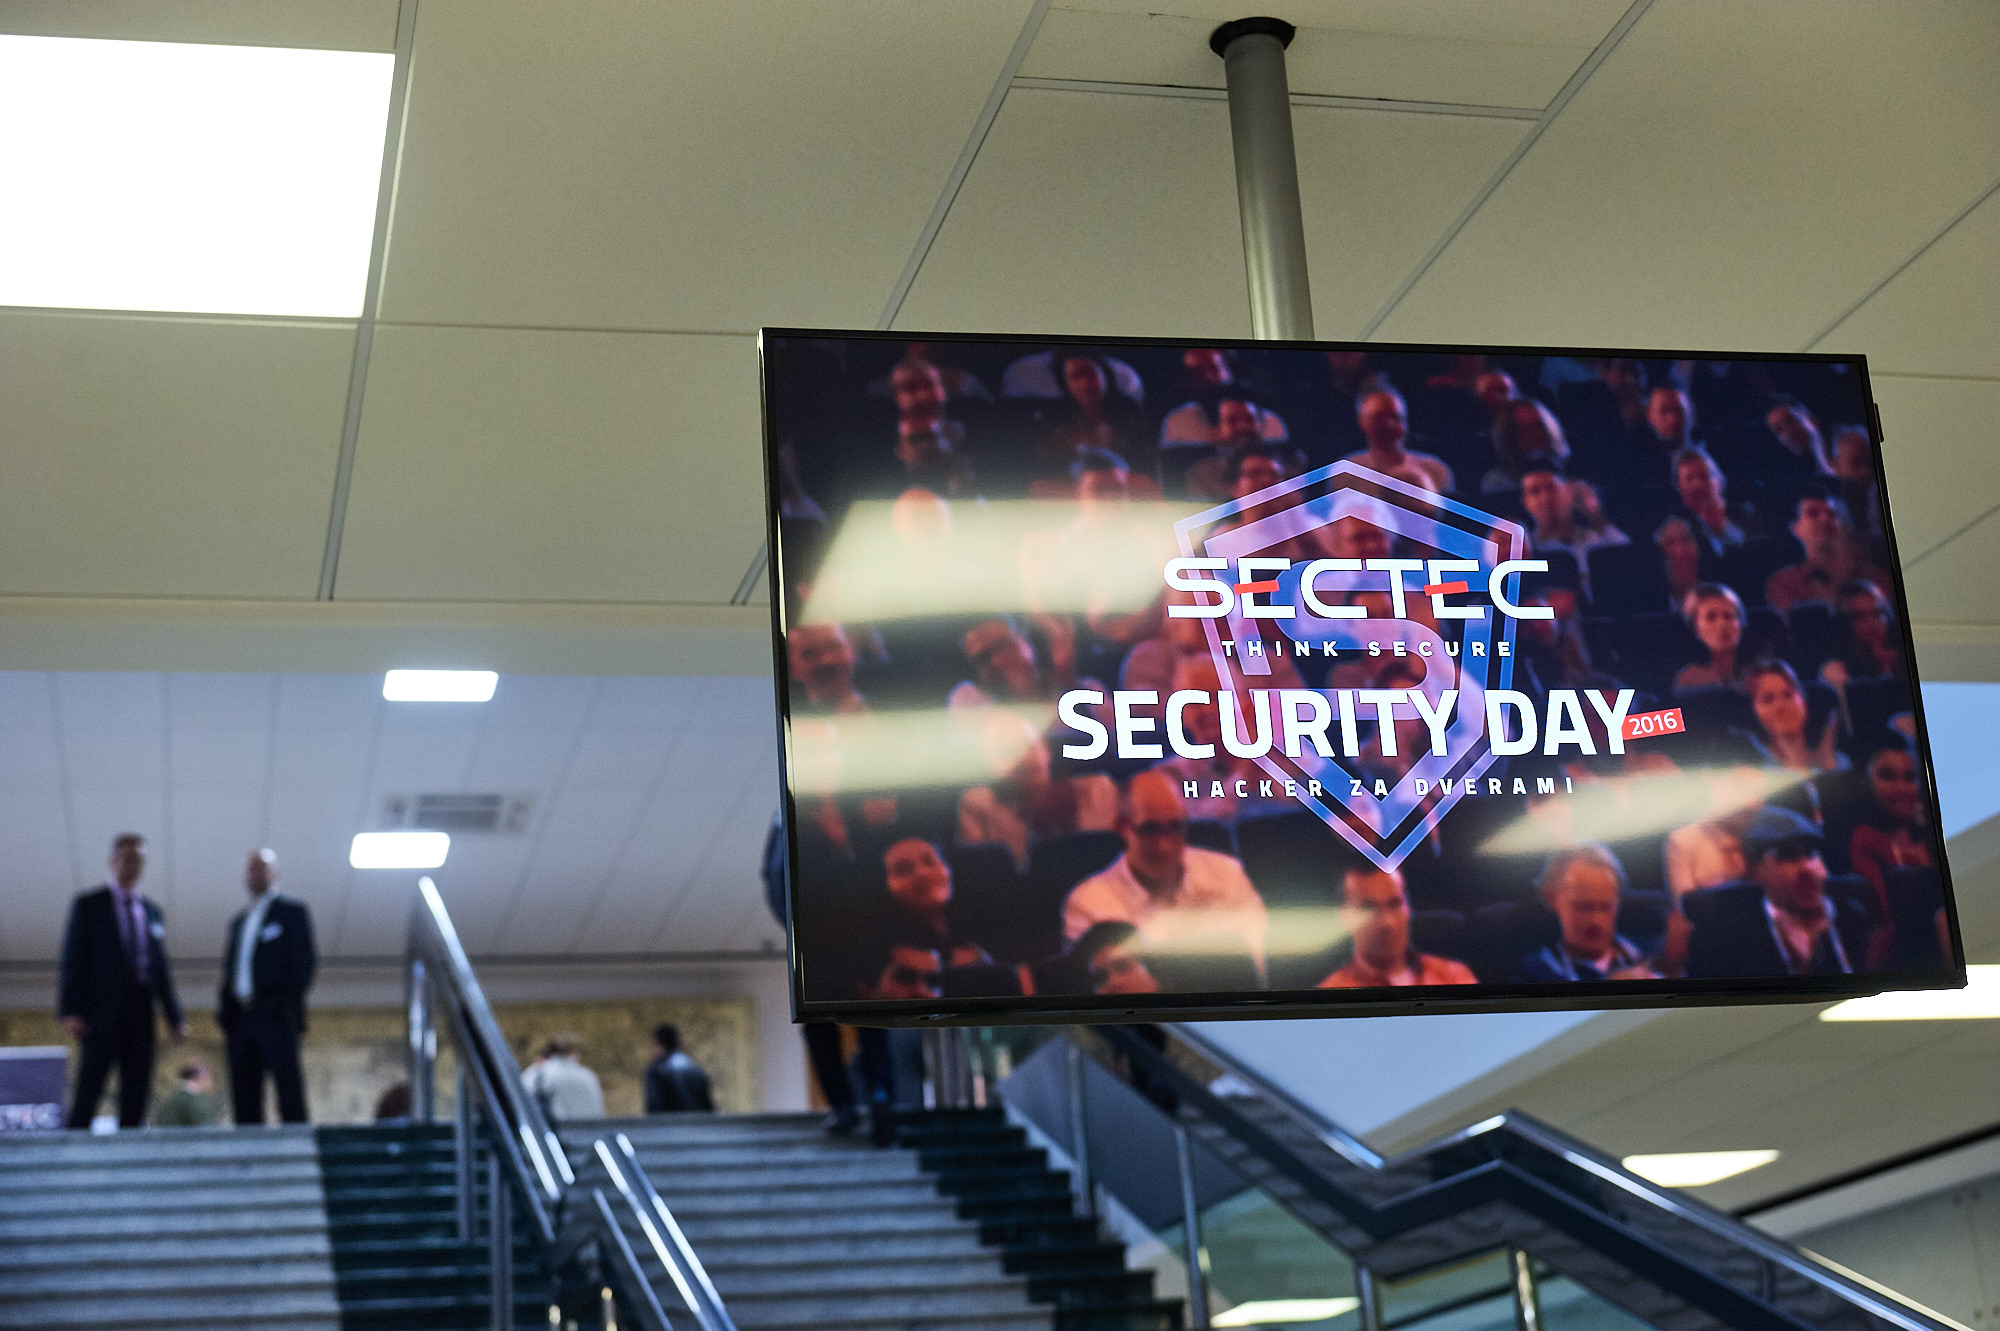 SecTec Security Day 2016 – Hacker za dverami